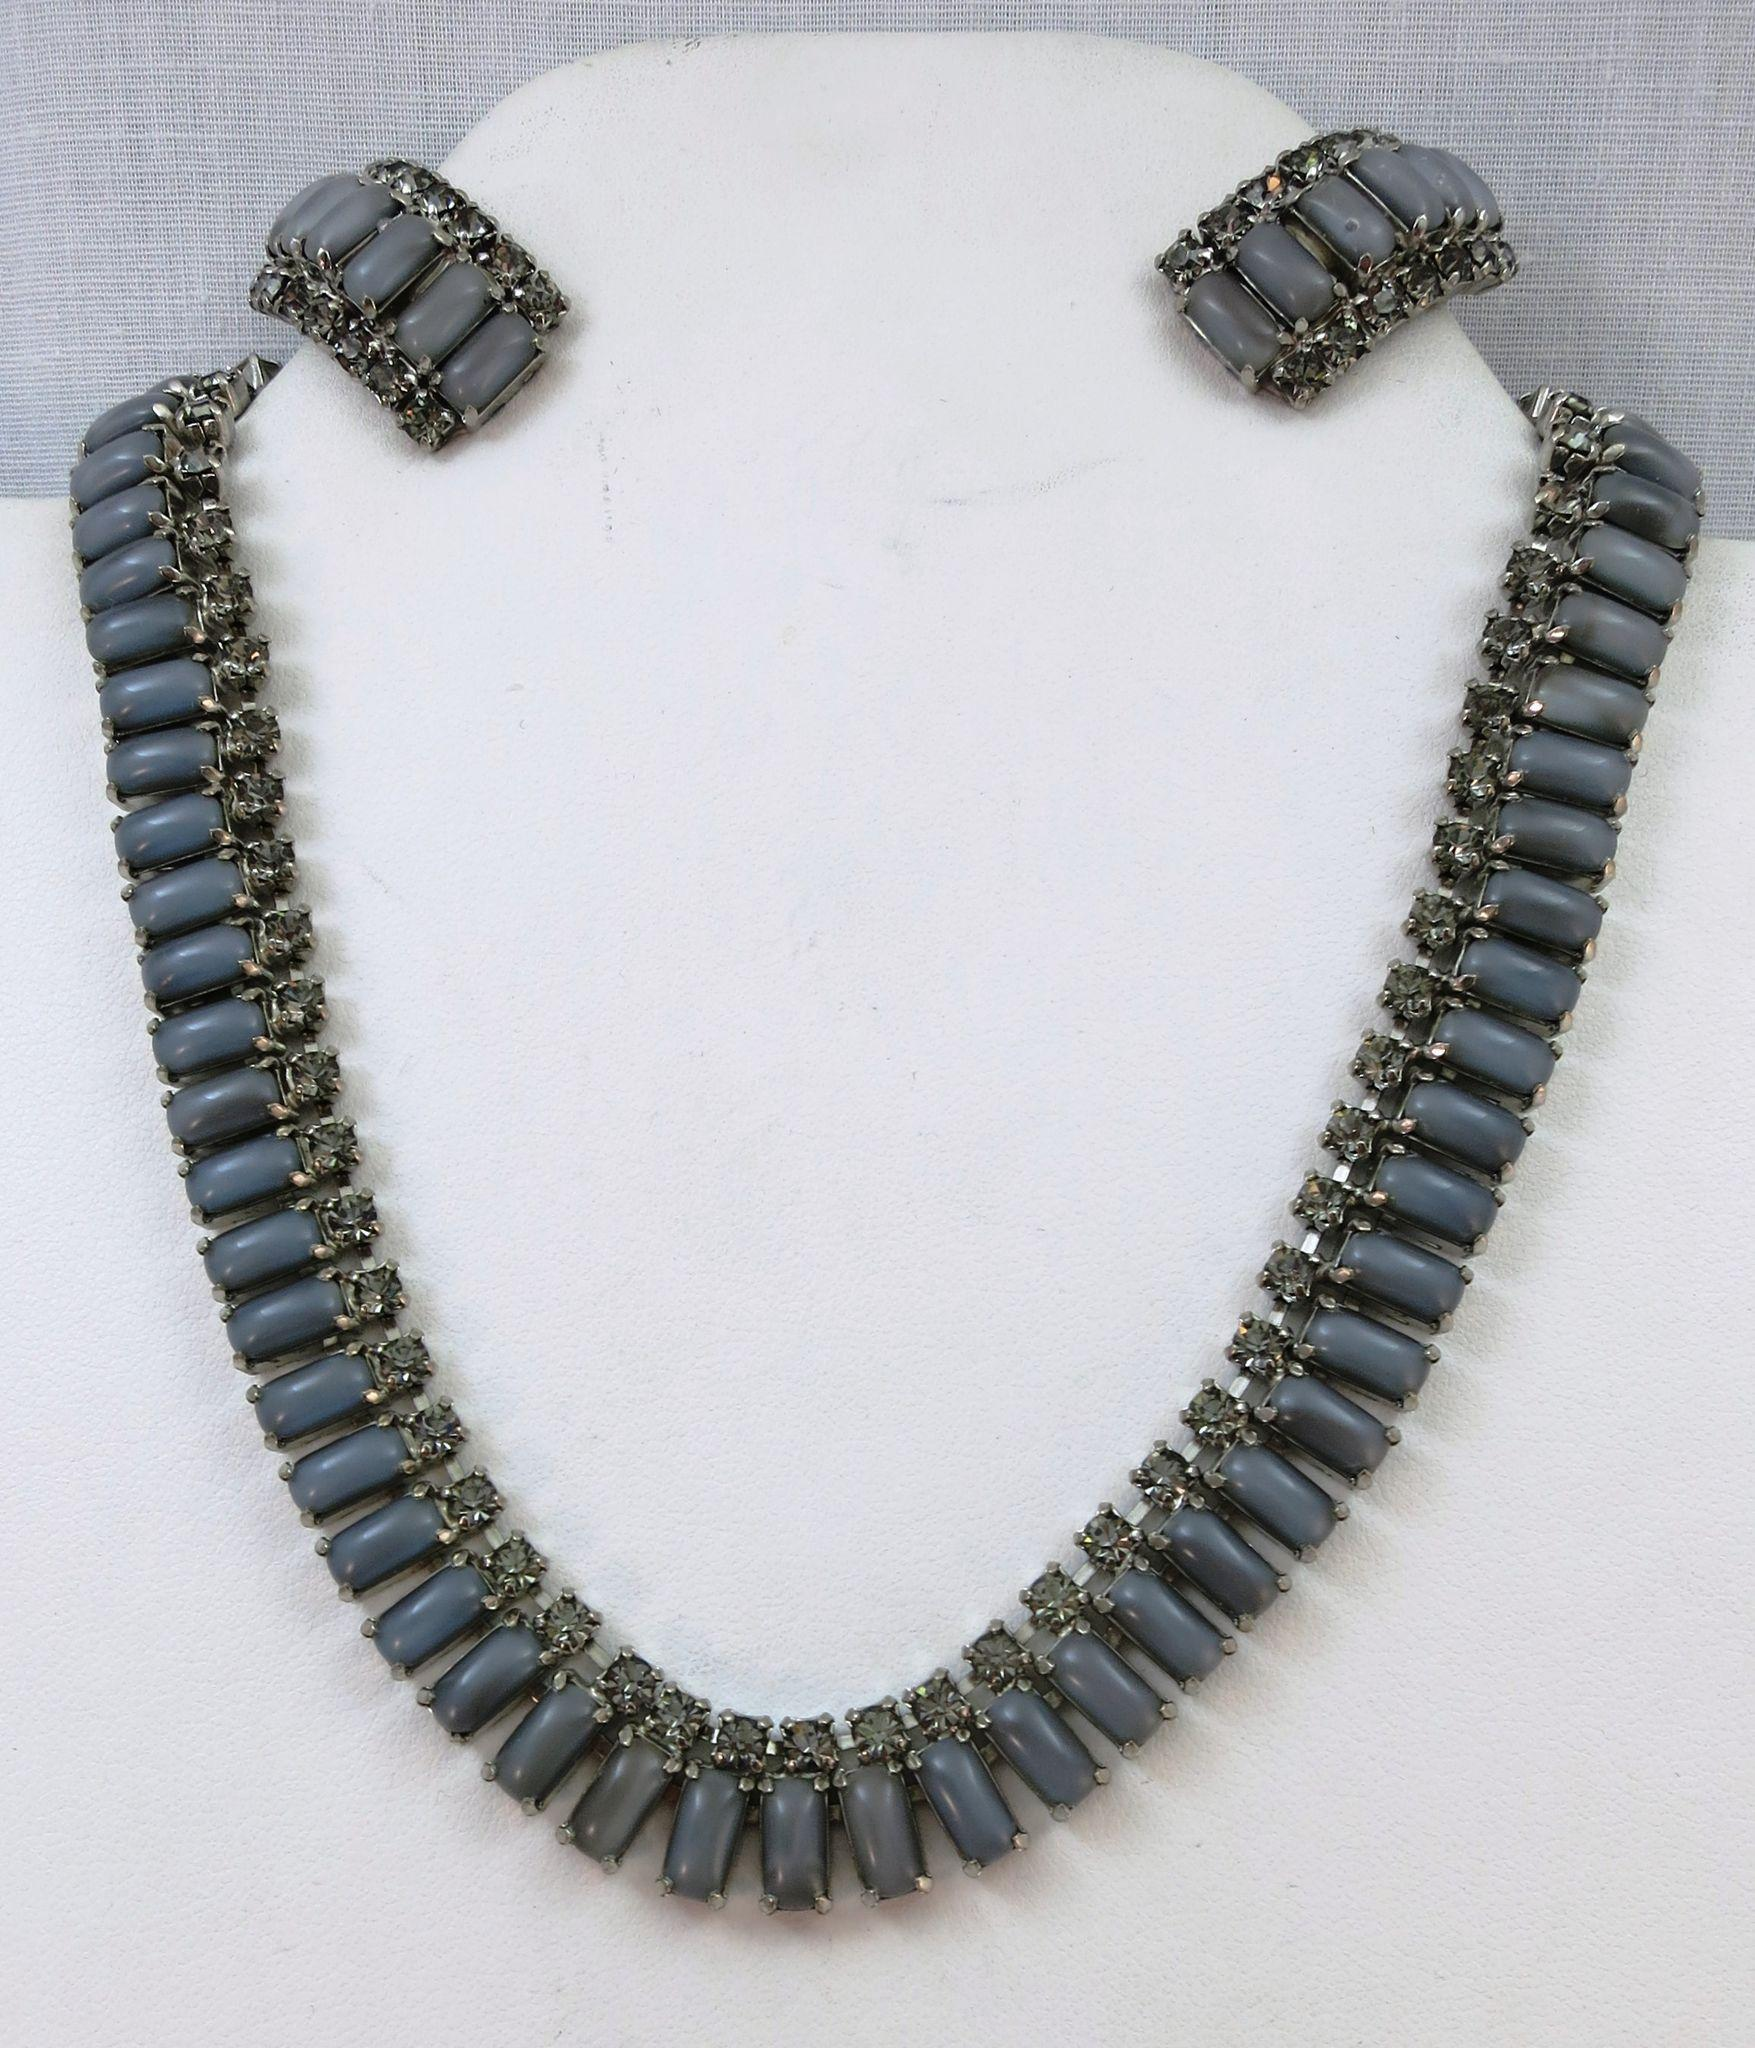 VINTAGE  60's Grayish Rhinestone Necklace and Clip Earrings